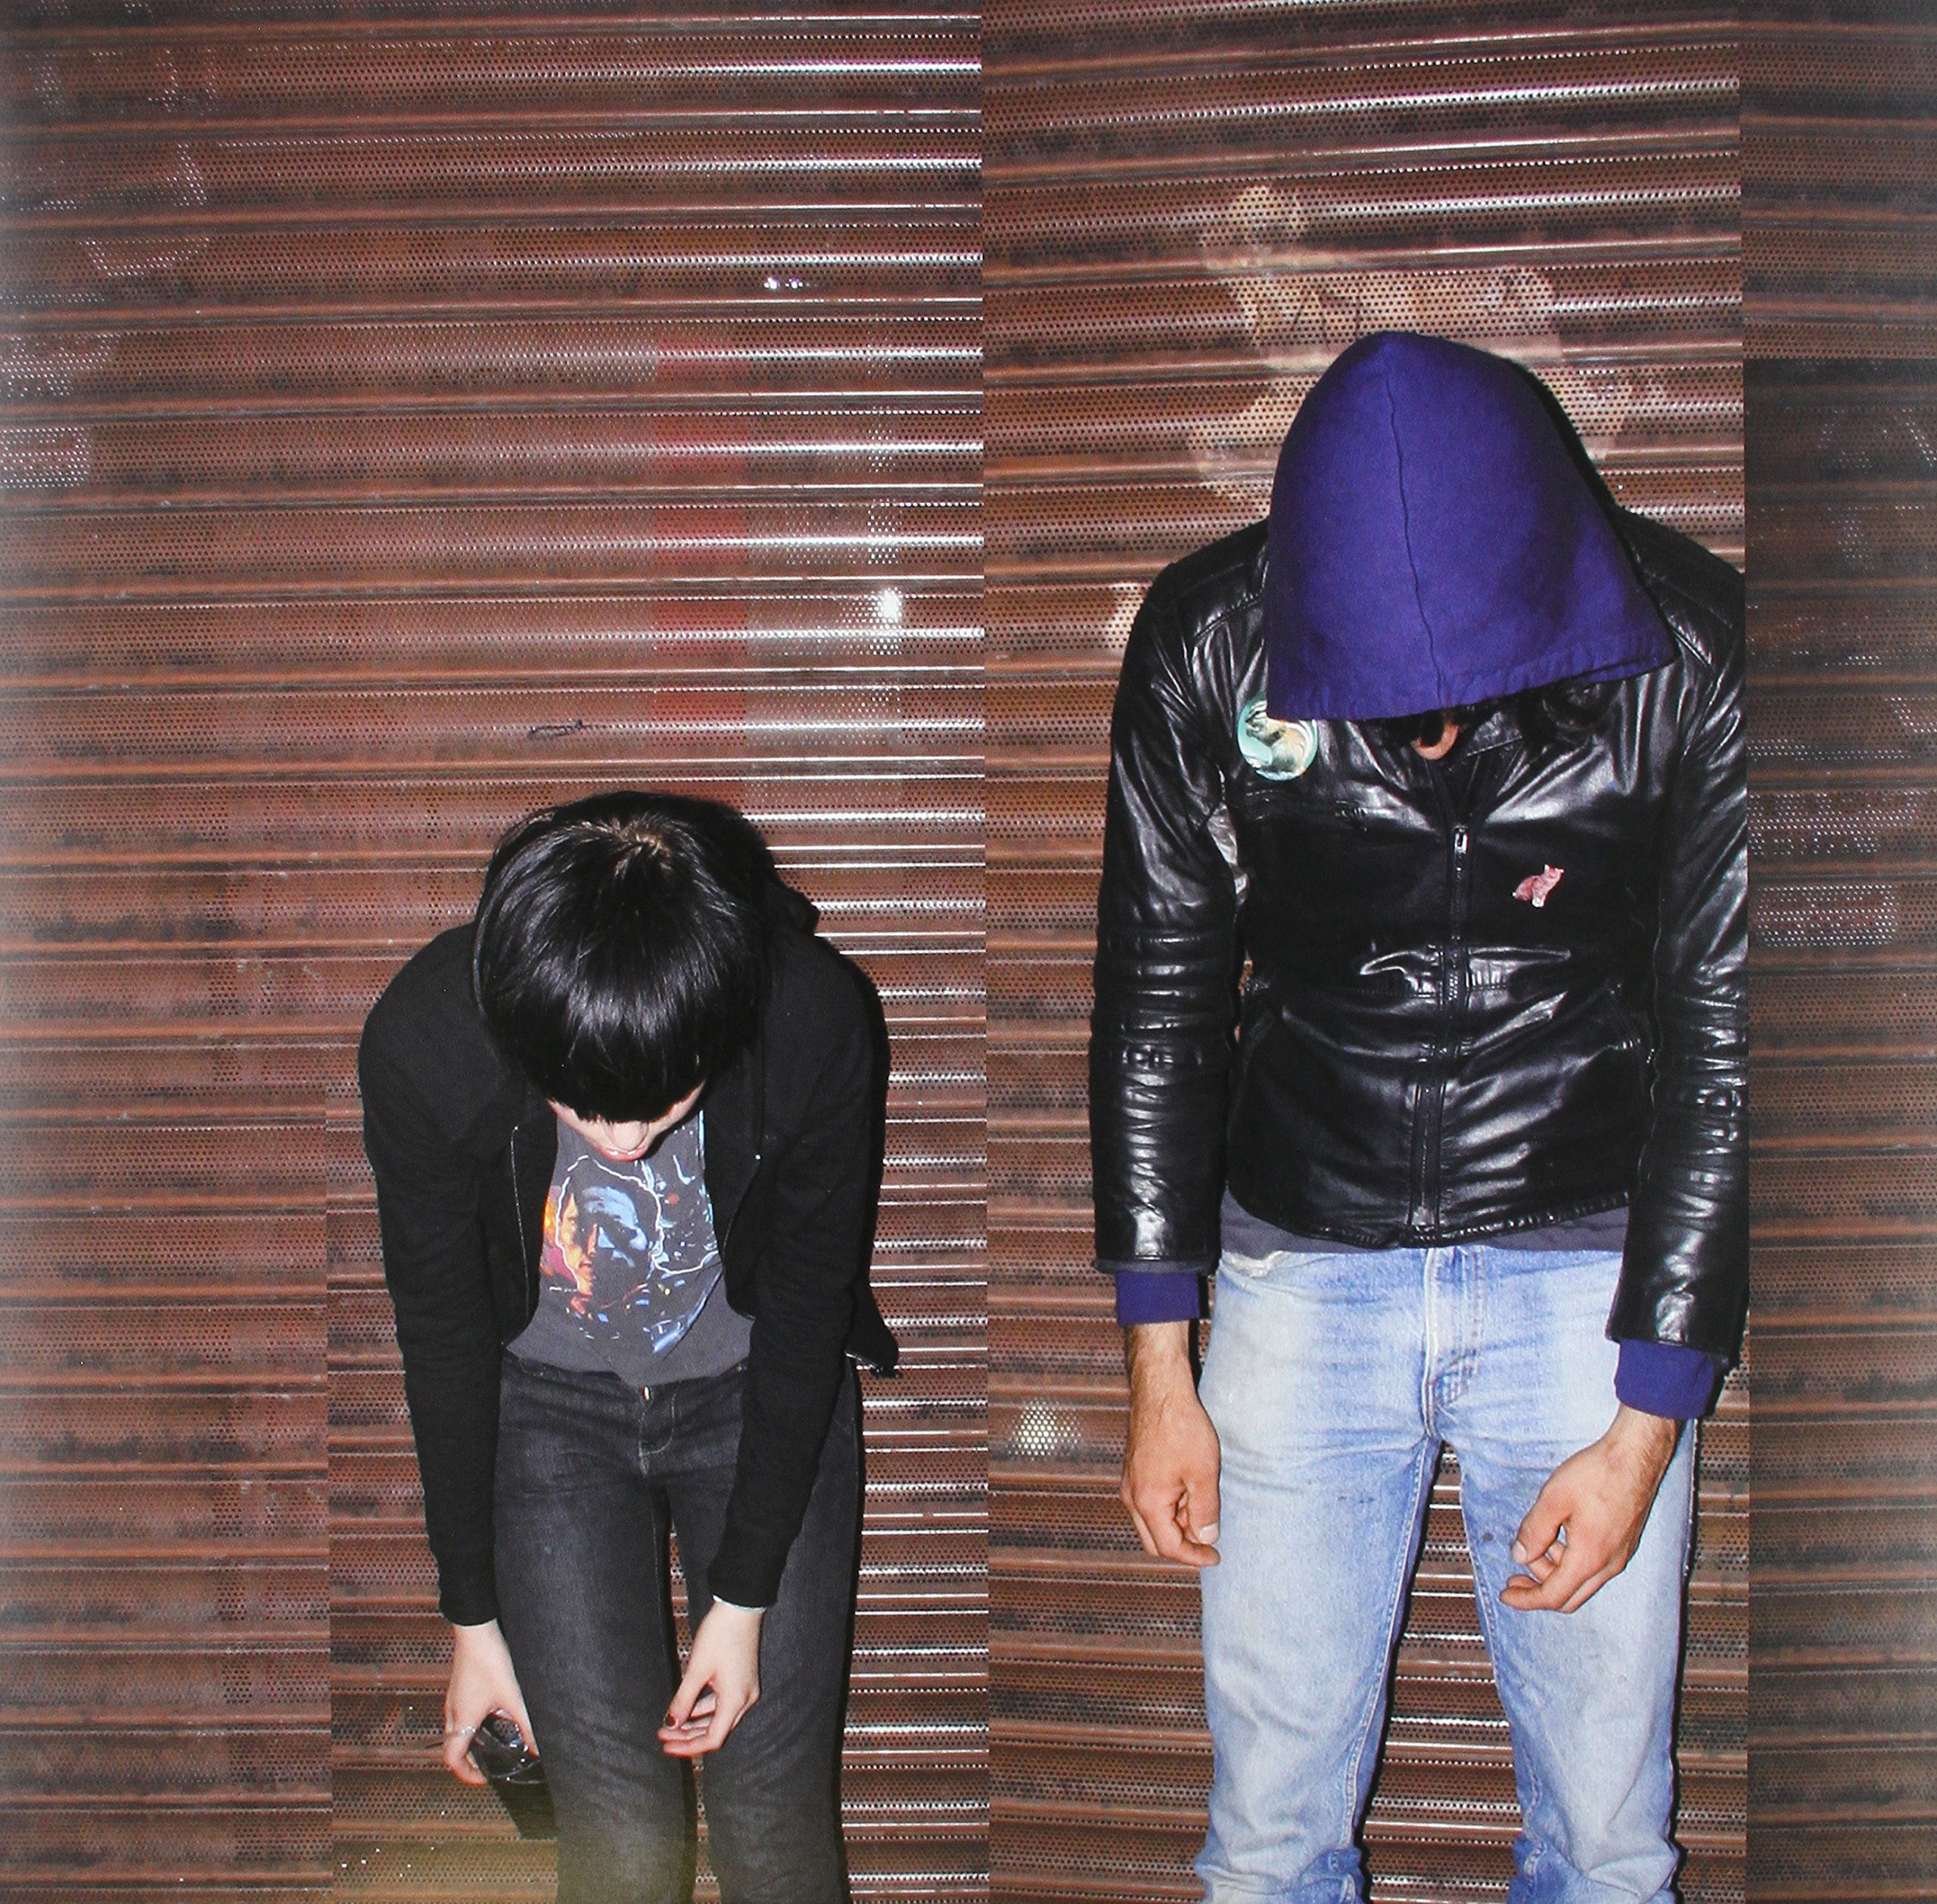 Crystal Castles [Vinyl] by Last Gang